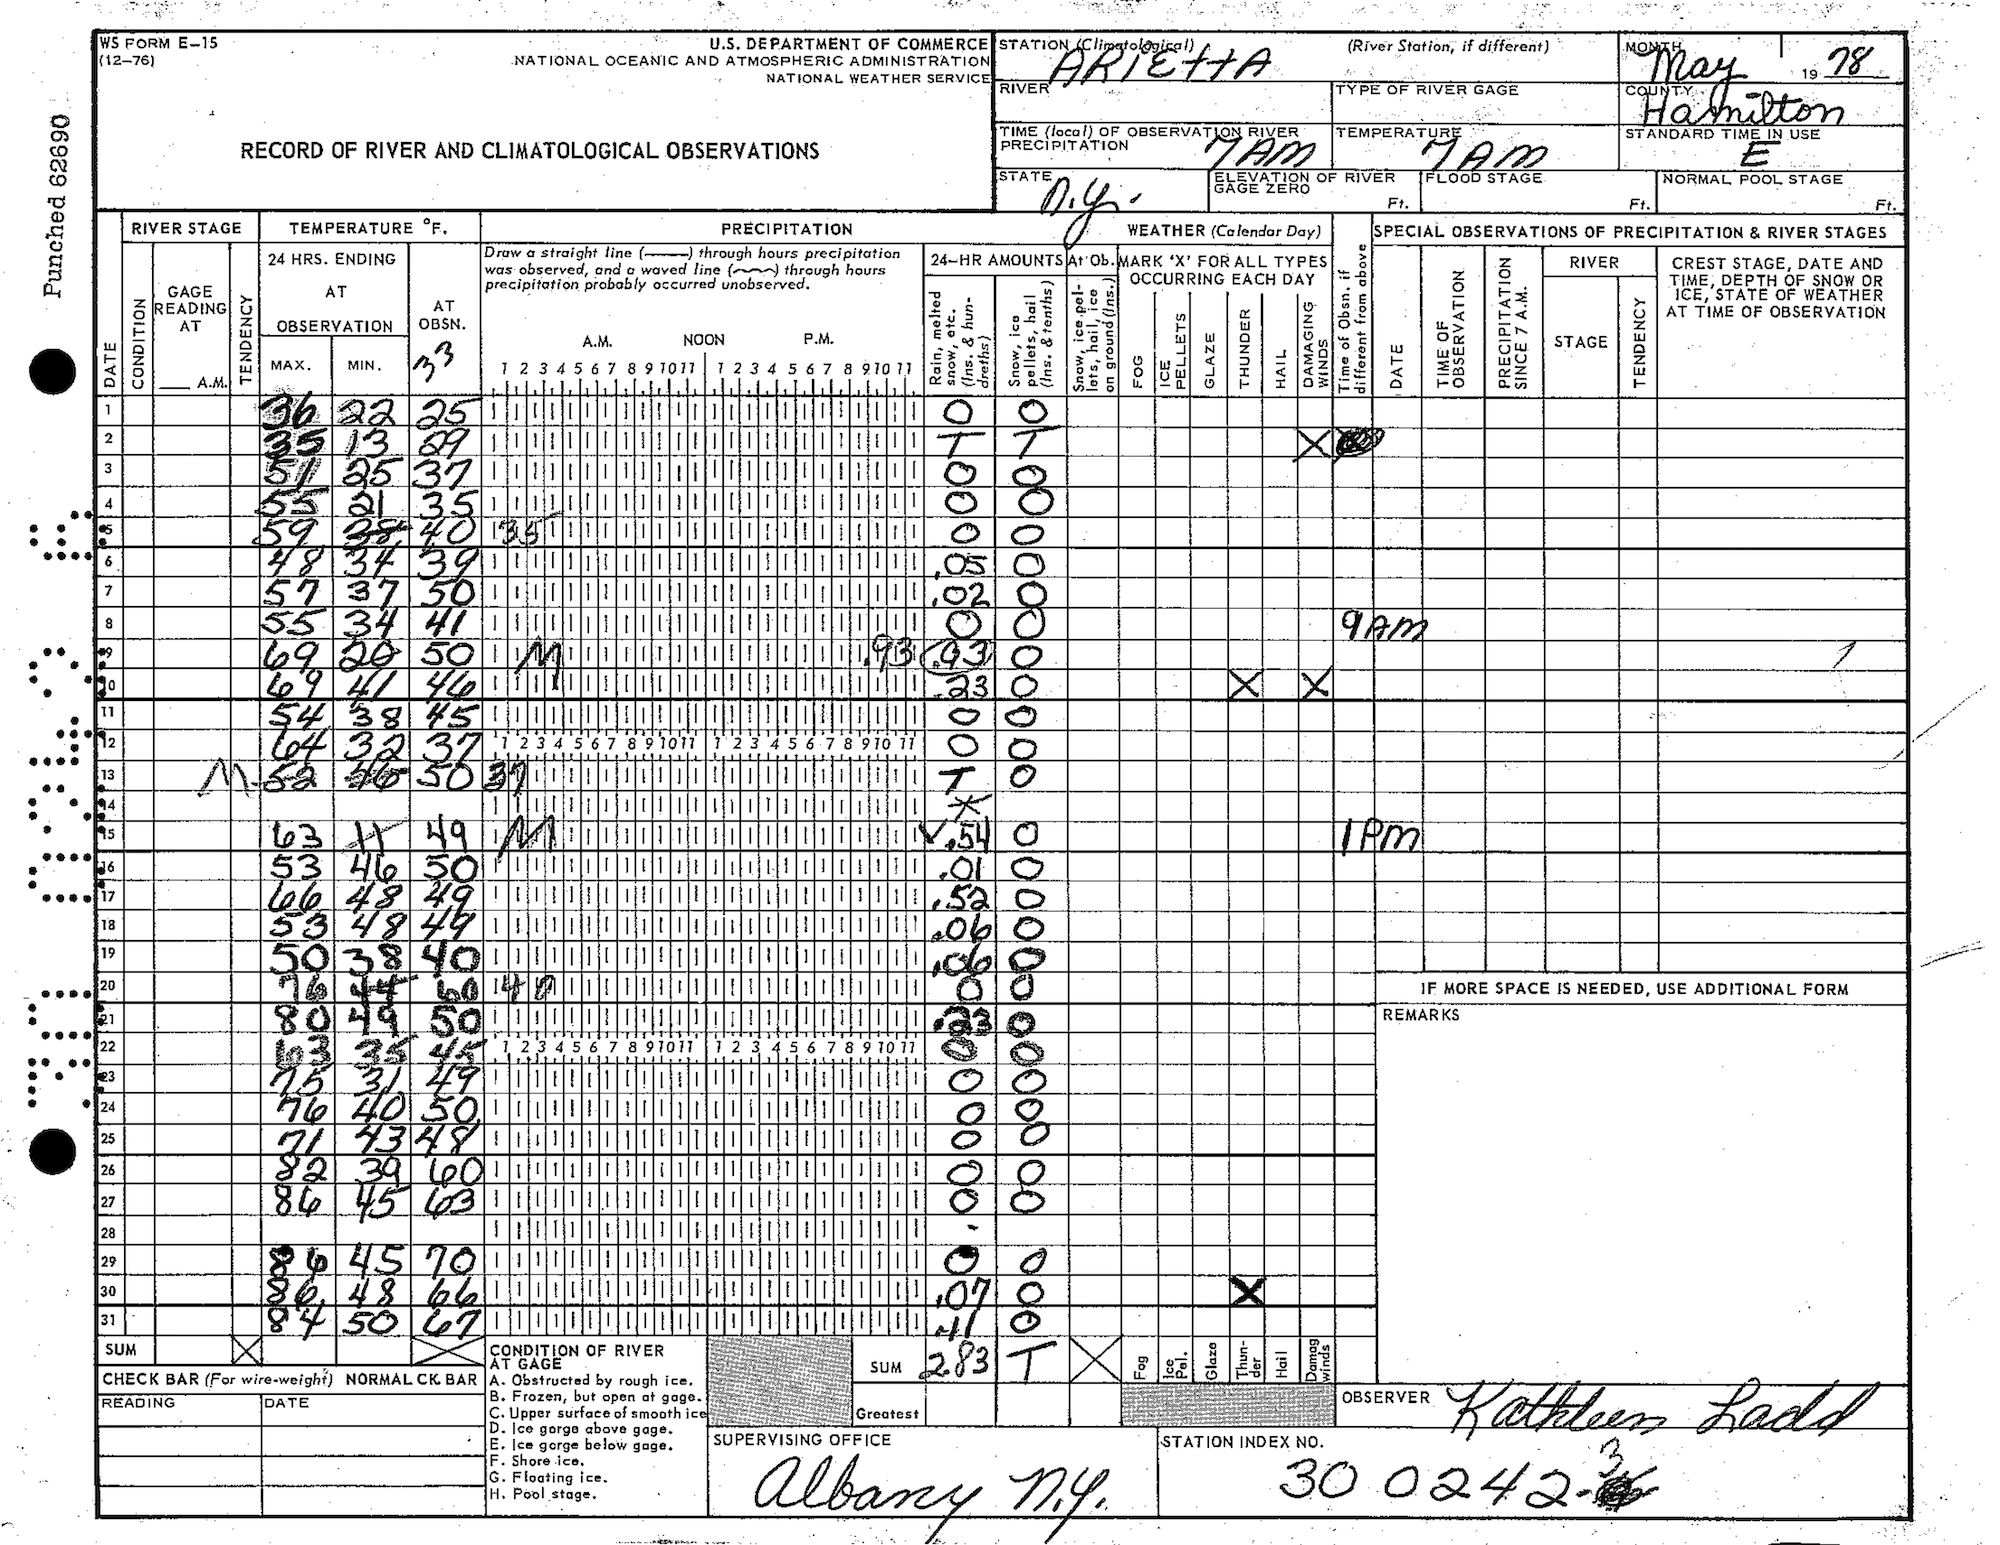 A table of weather observations from May 1978 in Arietta, New York.